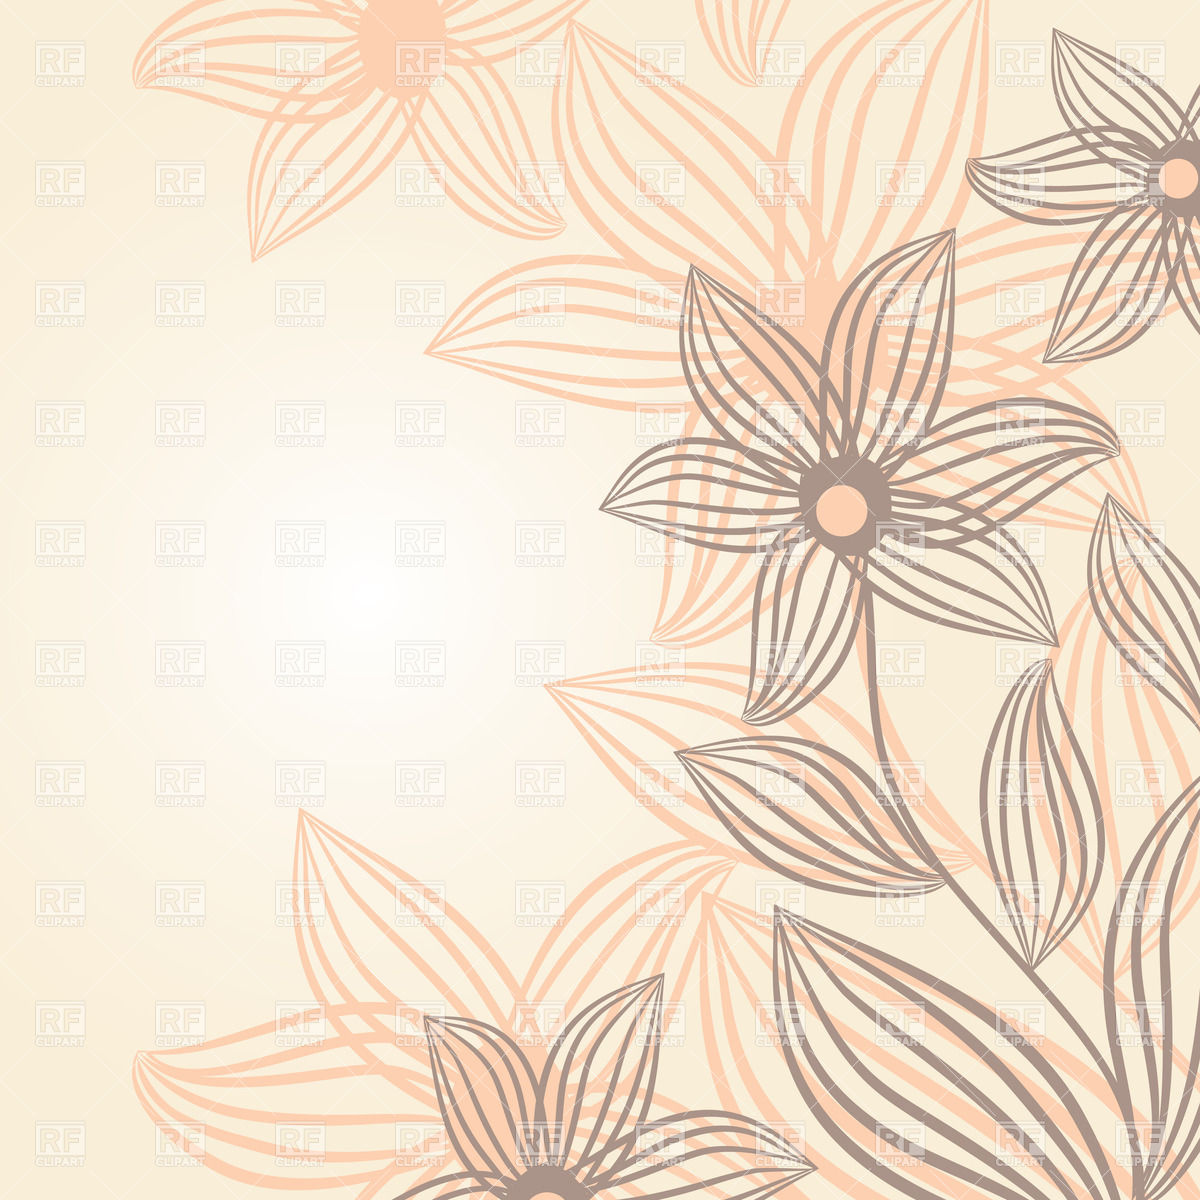 Pastel leaves background clipart clip transparent download Pastel leaves background clipart - ClipartFest clip transparent download